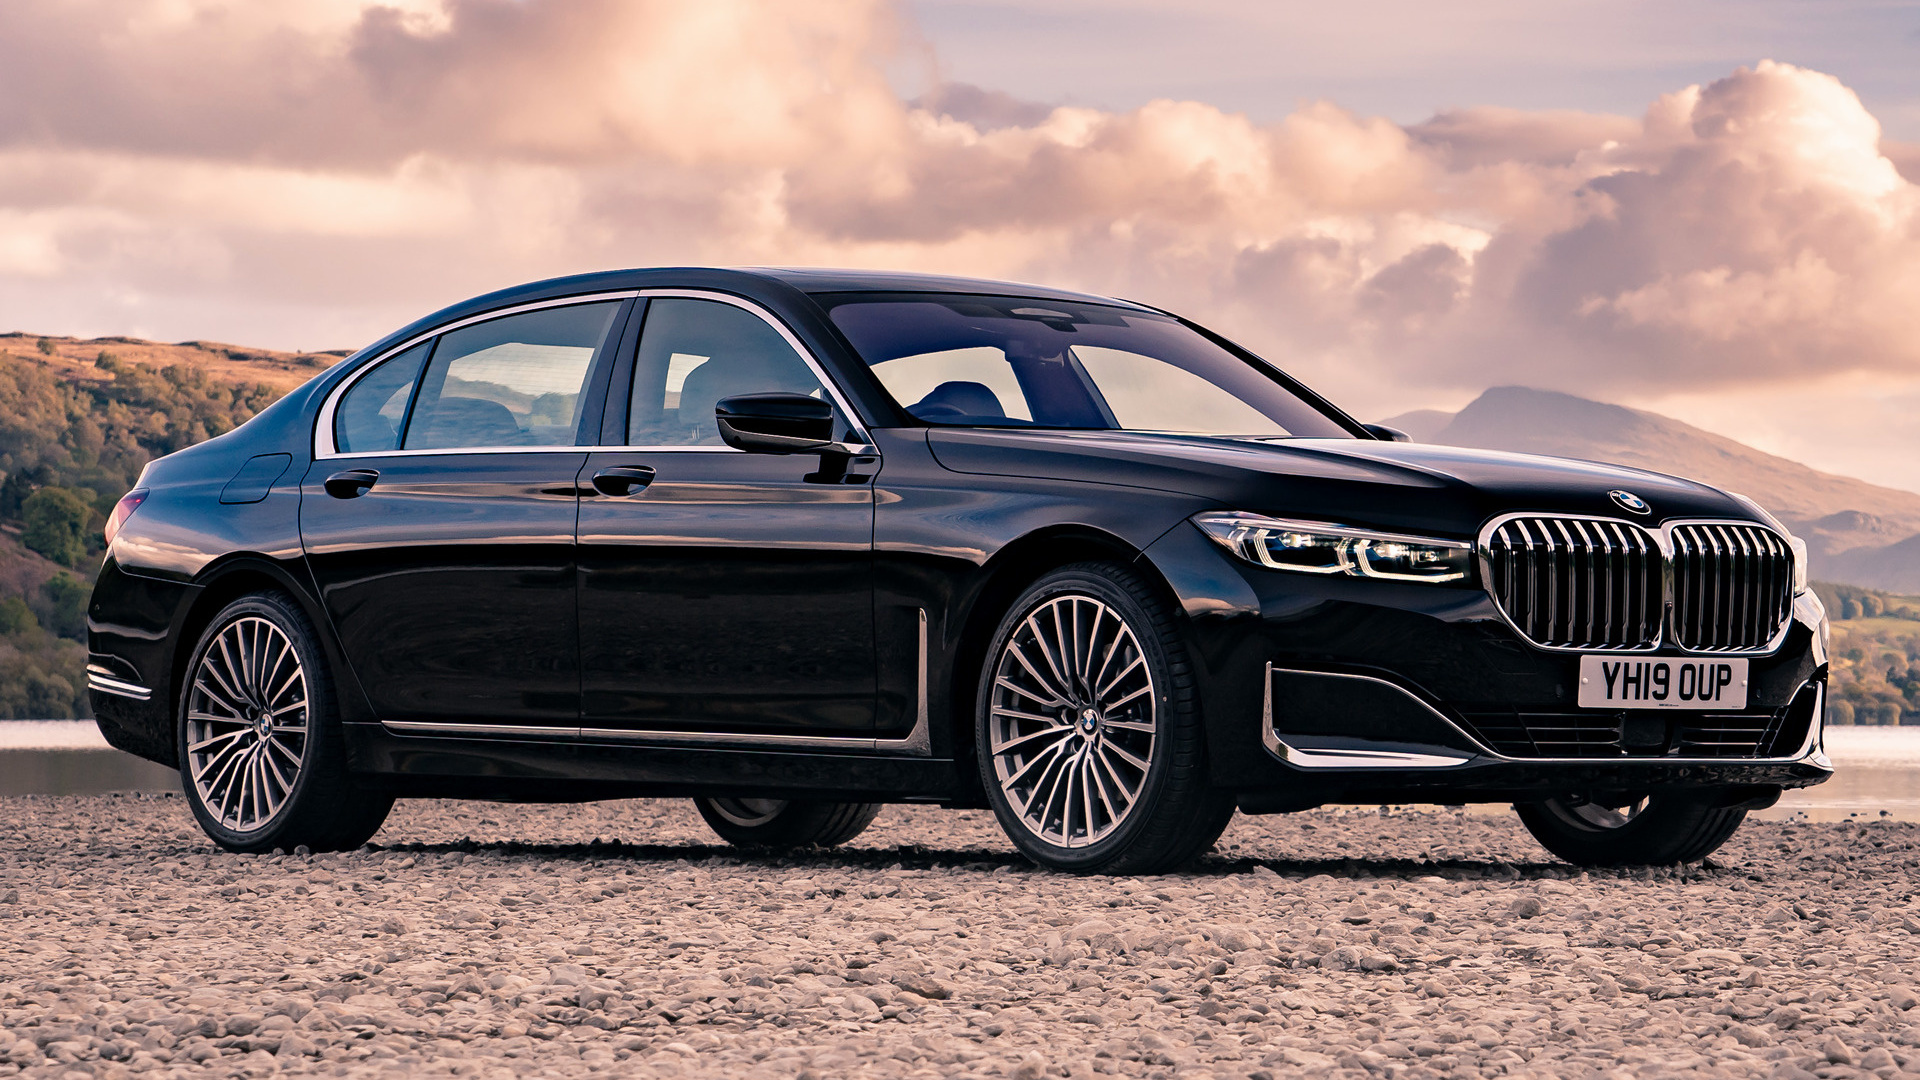 2019 Bmw 7 Series Lwb Uk Wallpapers And Hd Images